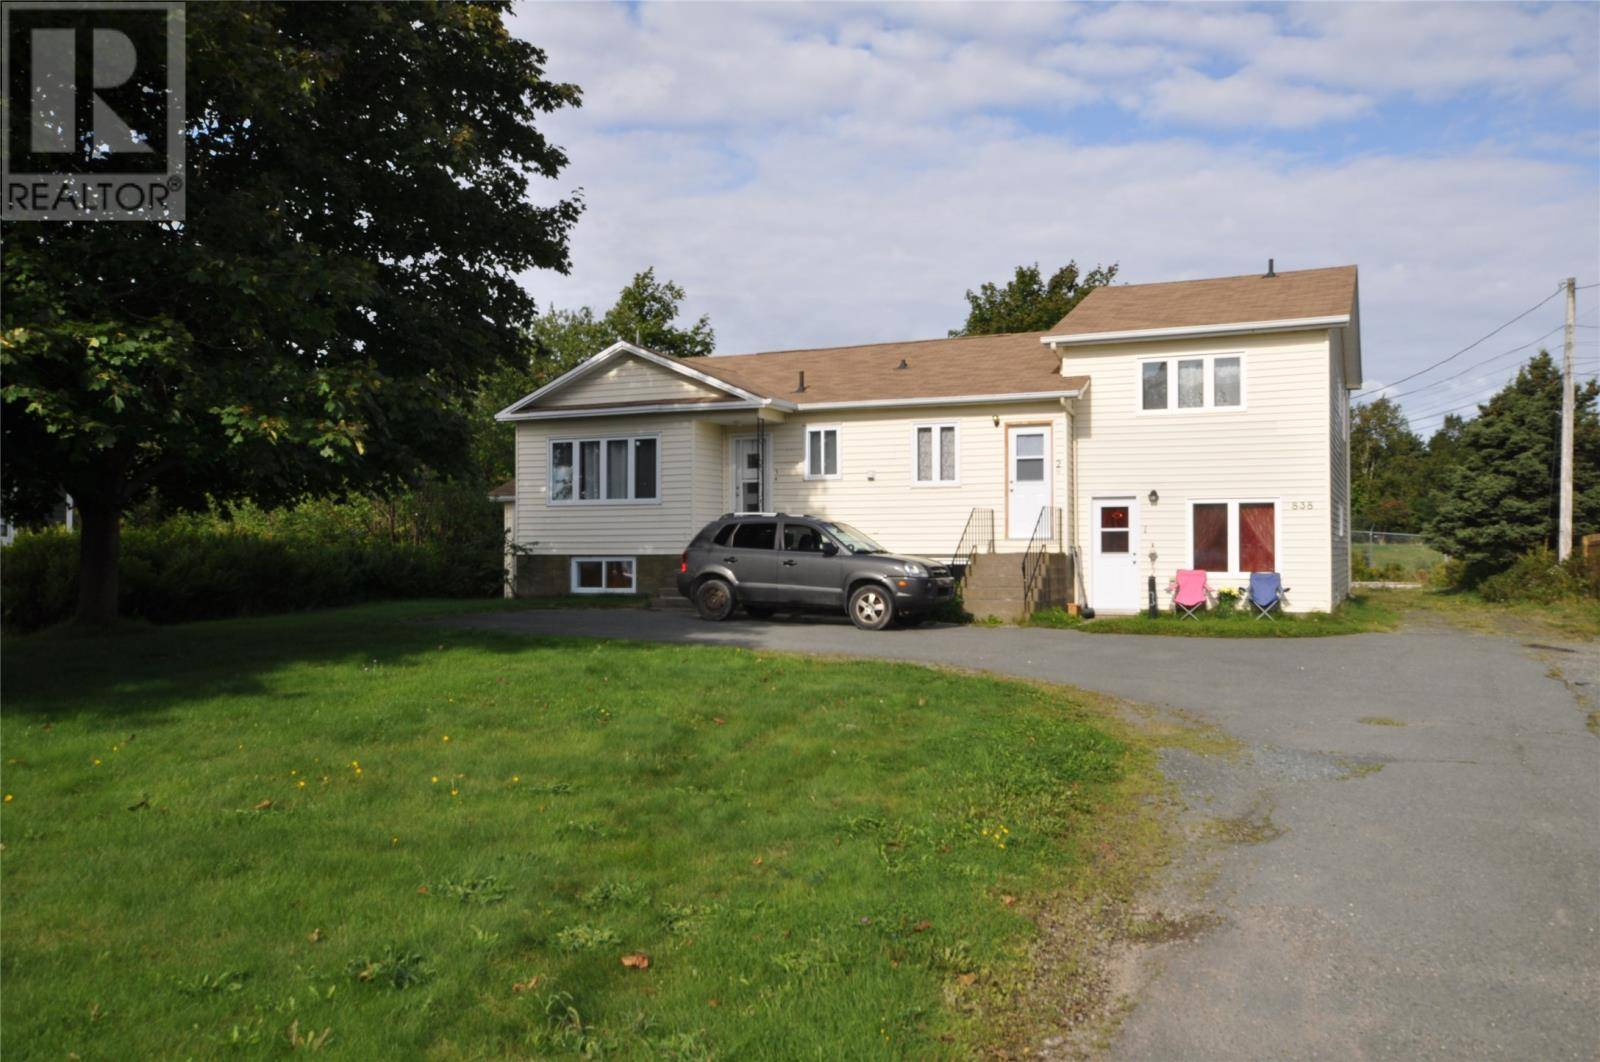 Townhouse for sale at 838 Conception Bay Hy Conception Bay South Newfoundland - MLS: 1162504